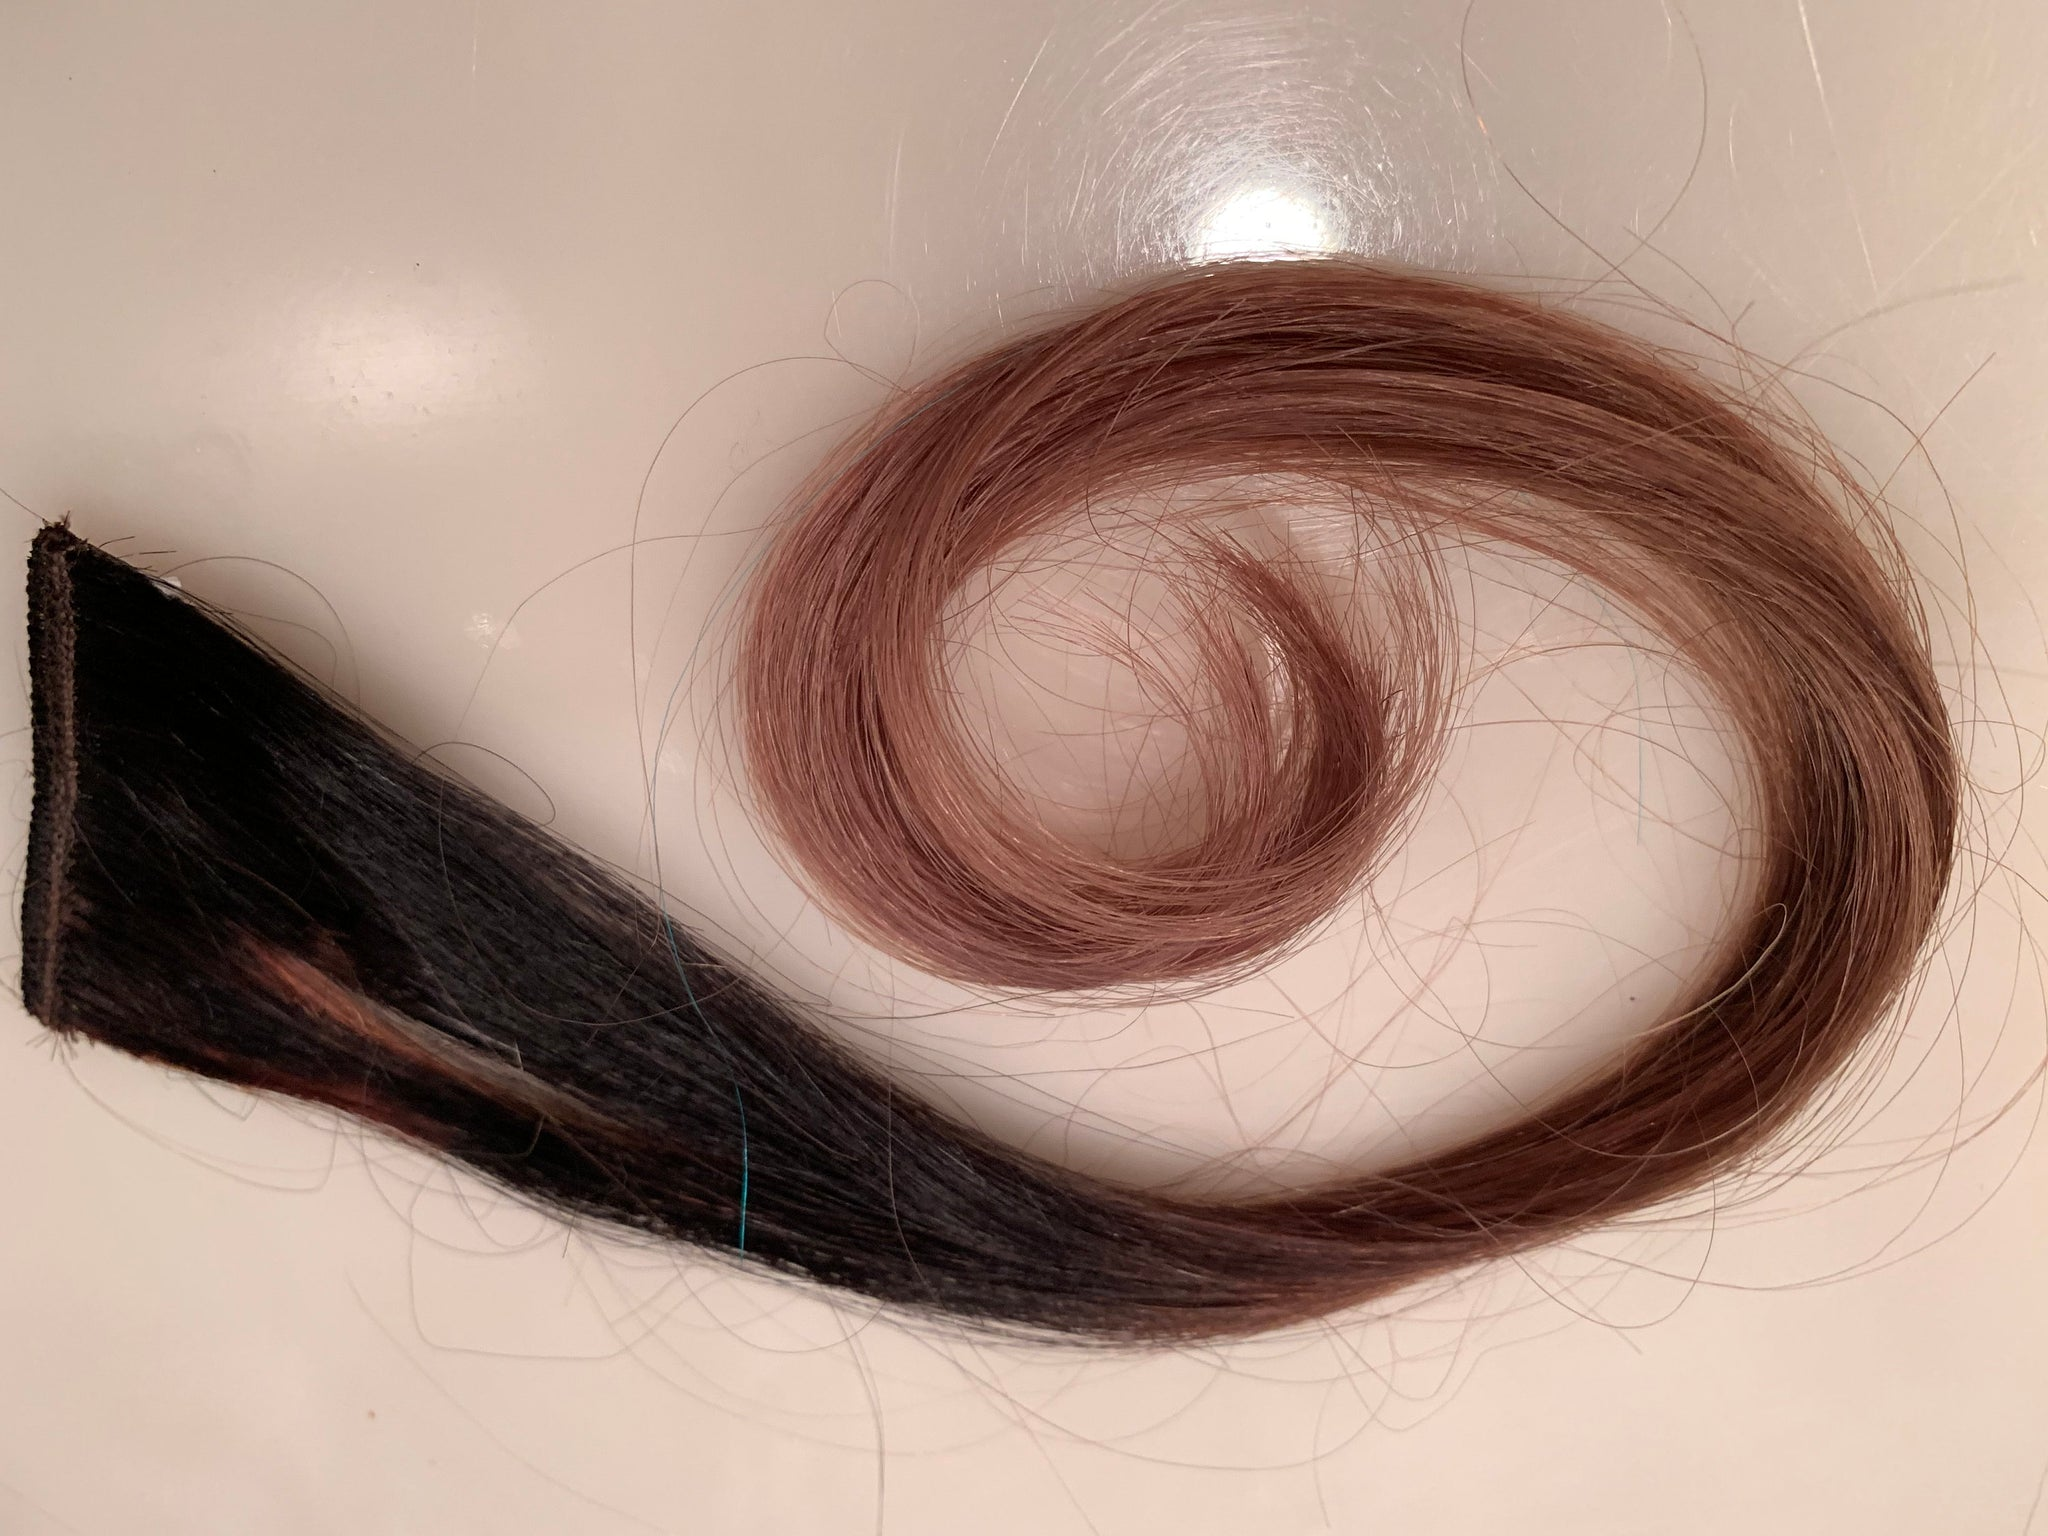 Black Brown Ombre 100% Human Hair Extensions Clip or Tape Streak 16 inches long